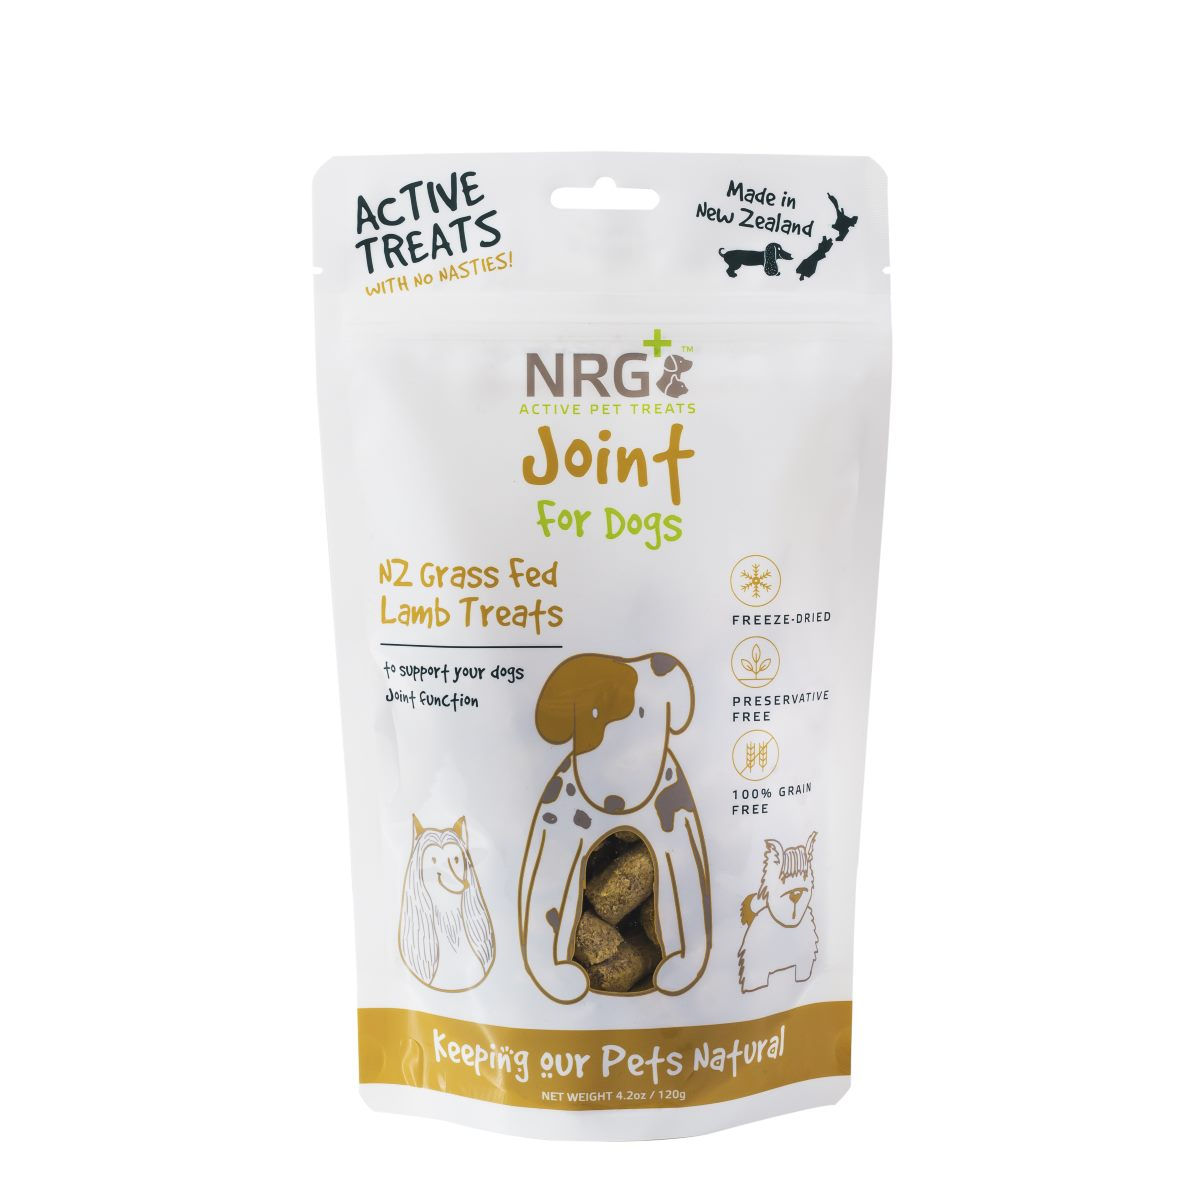 nrg plus active pet treats: joint for dogs